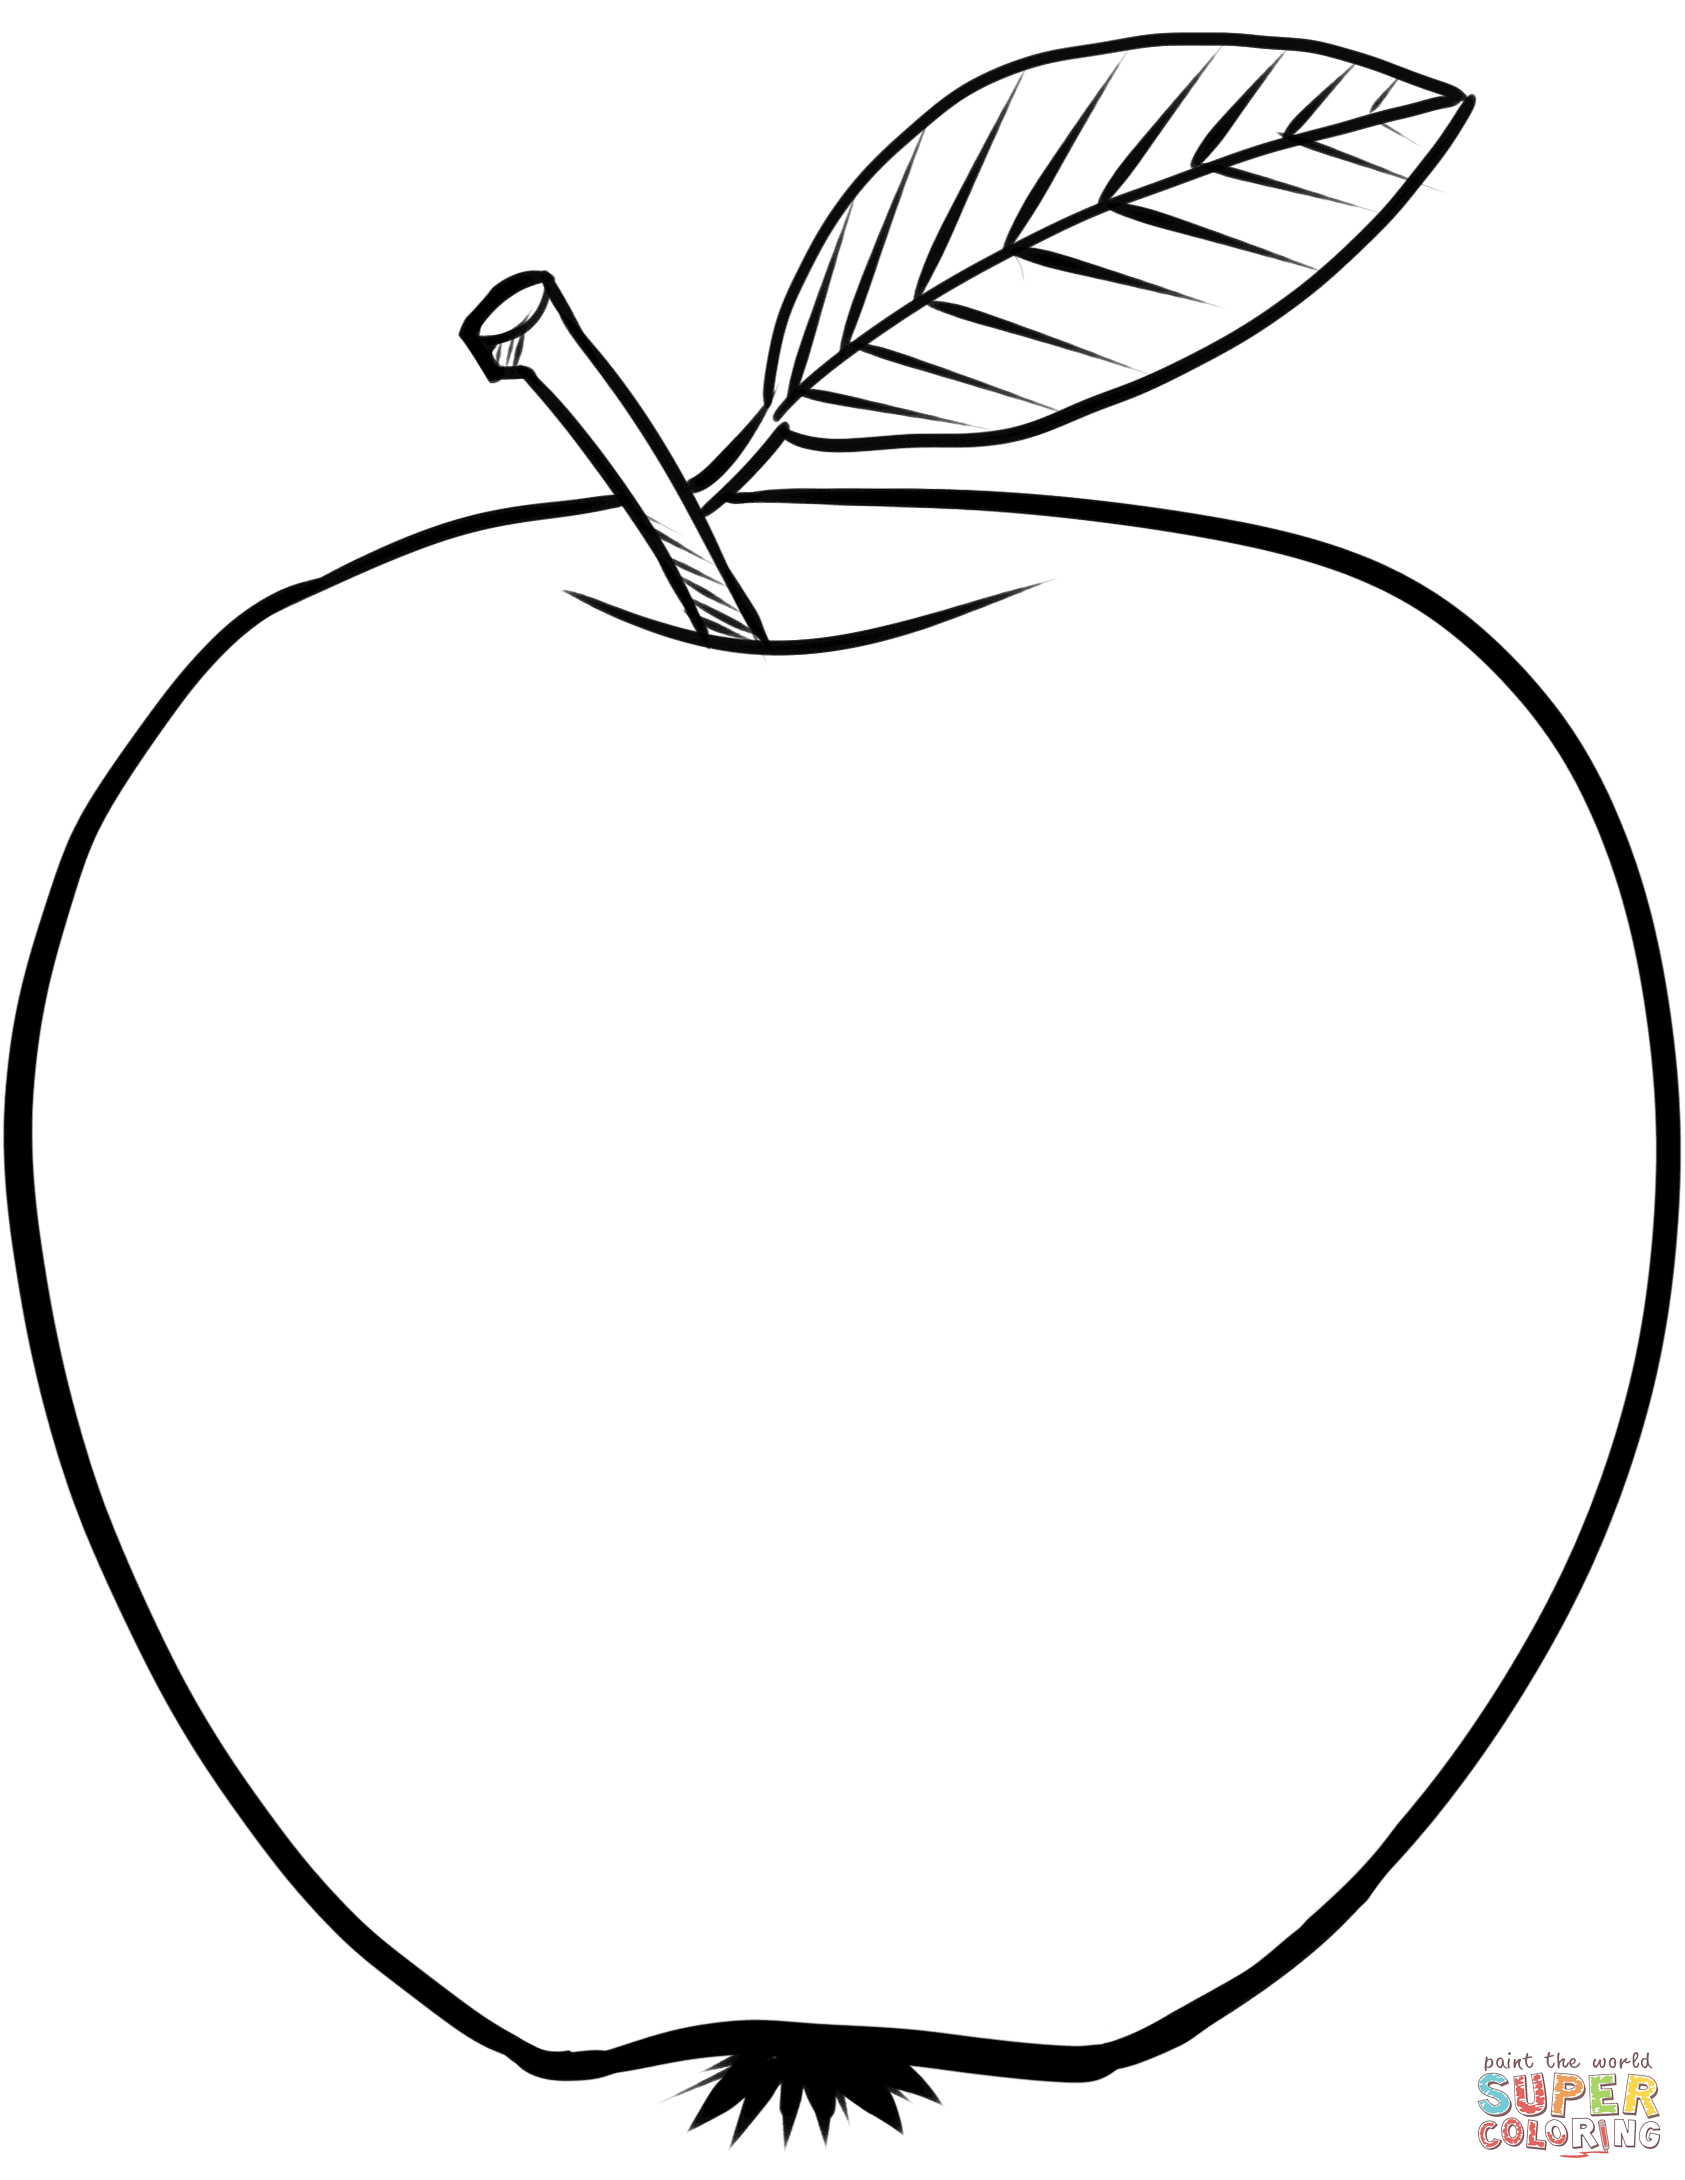 Coloring Pages Apple White : Coloring apple clipart best